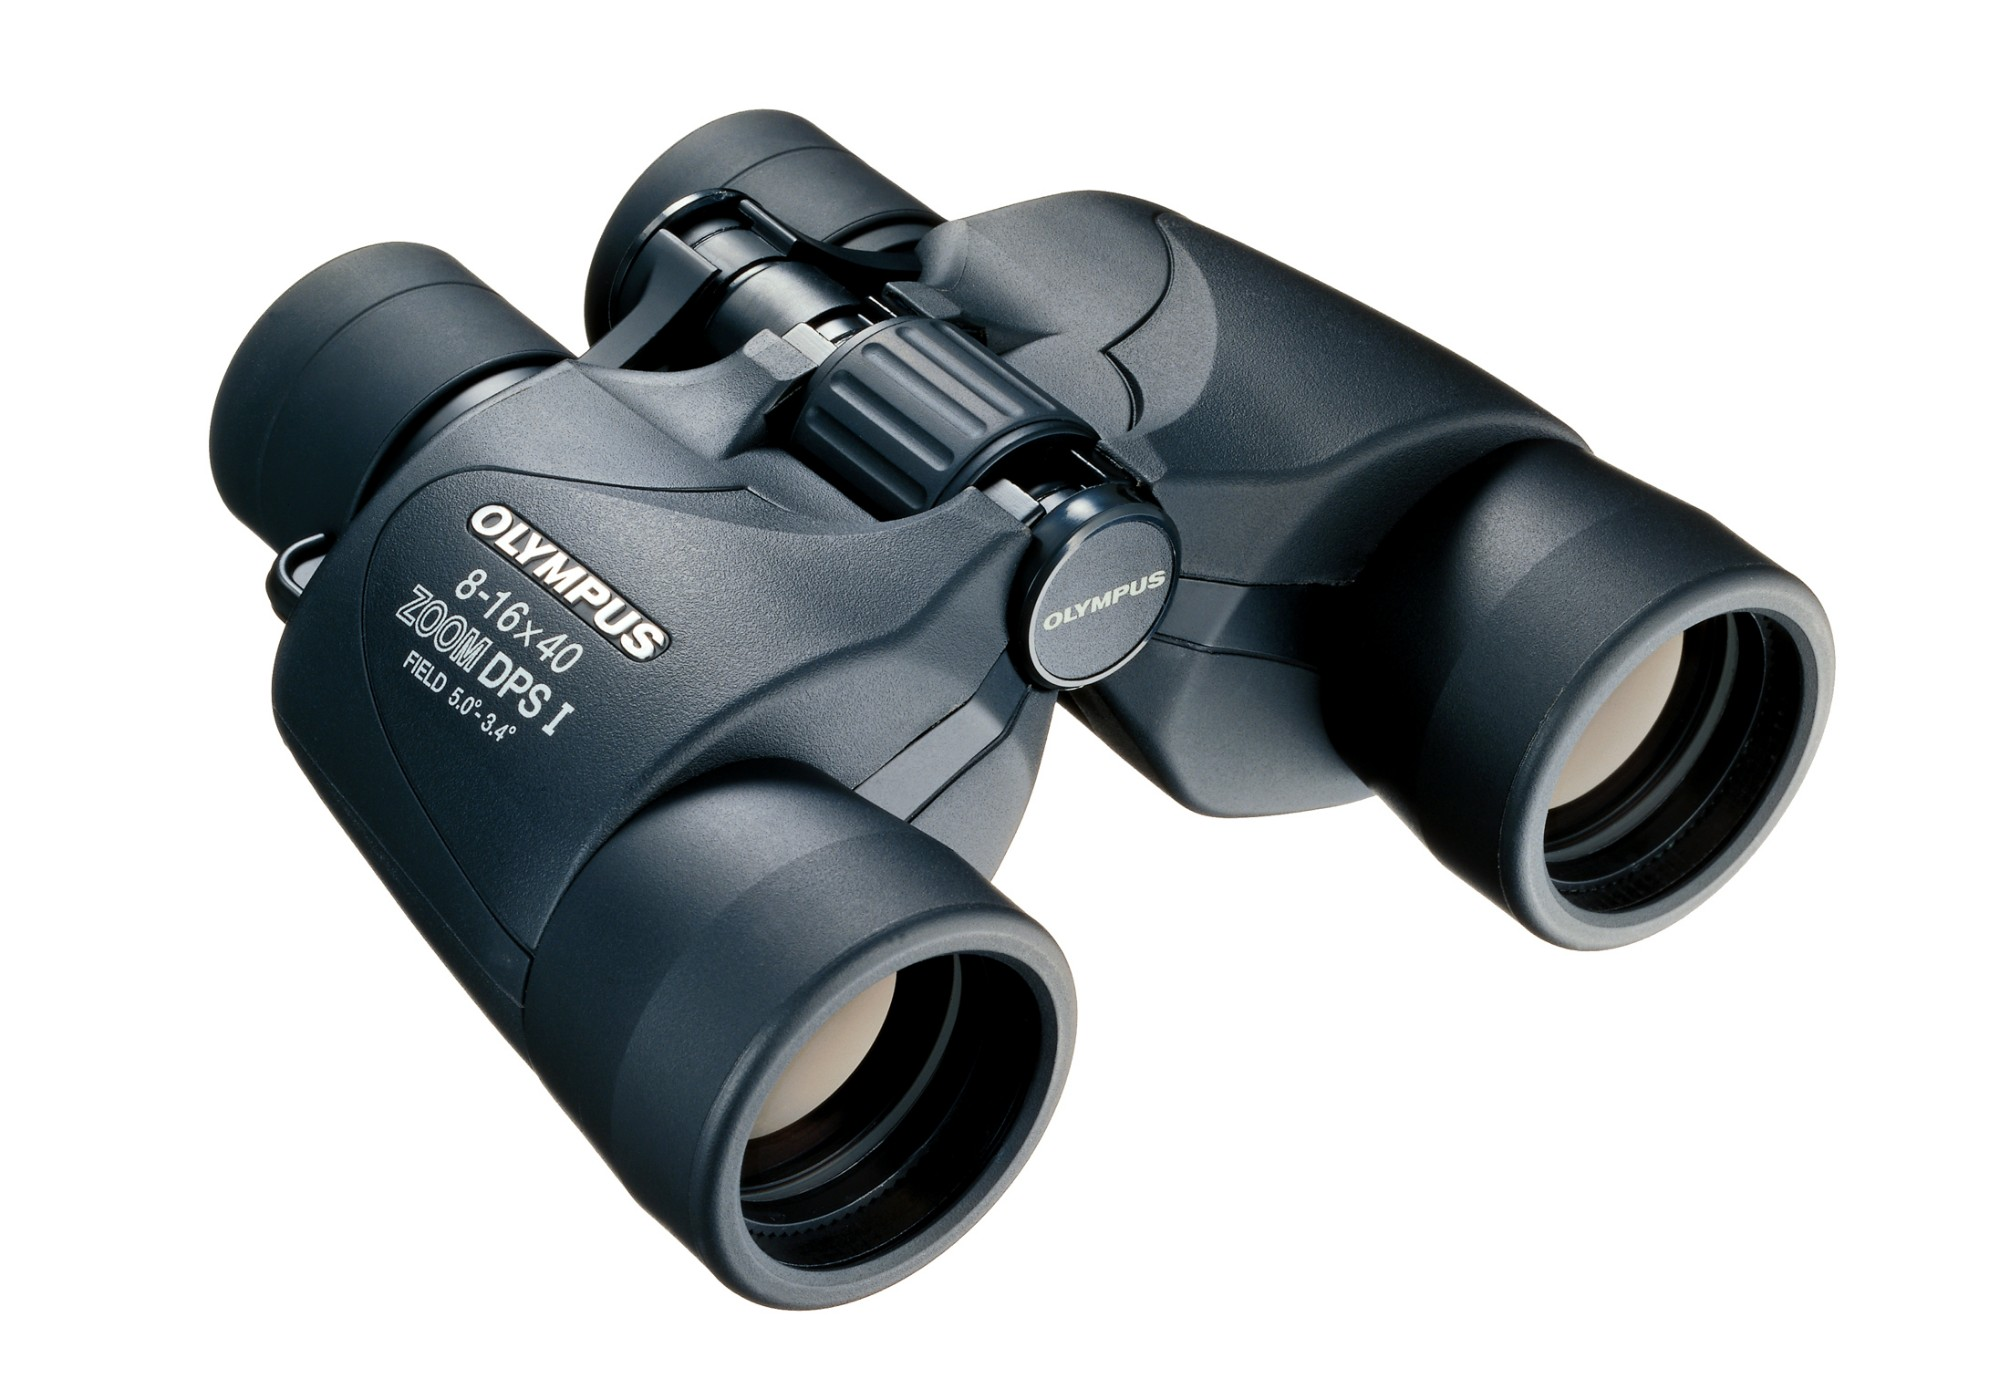 Binoculars High-power 8-16x Zooming Capability Durable High-quality Finish With Sure-grip Rubber